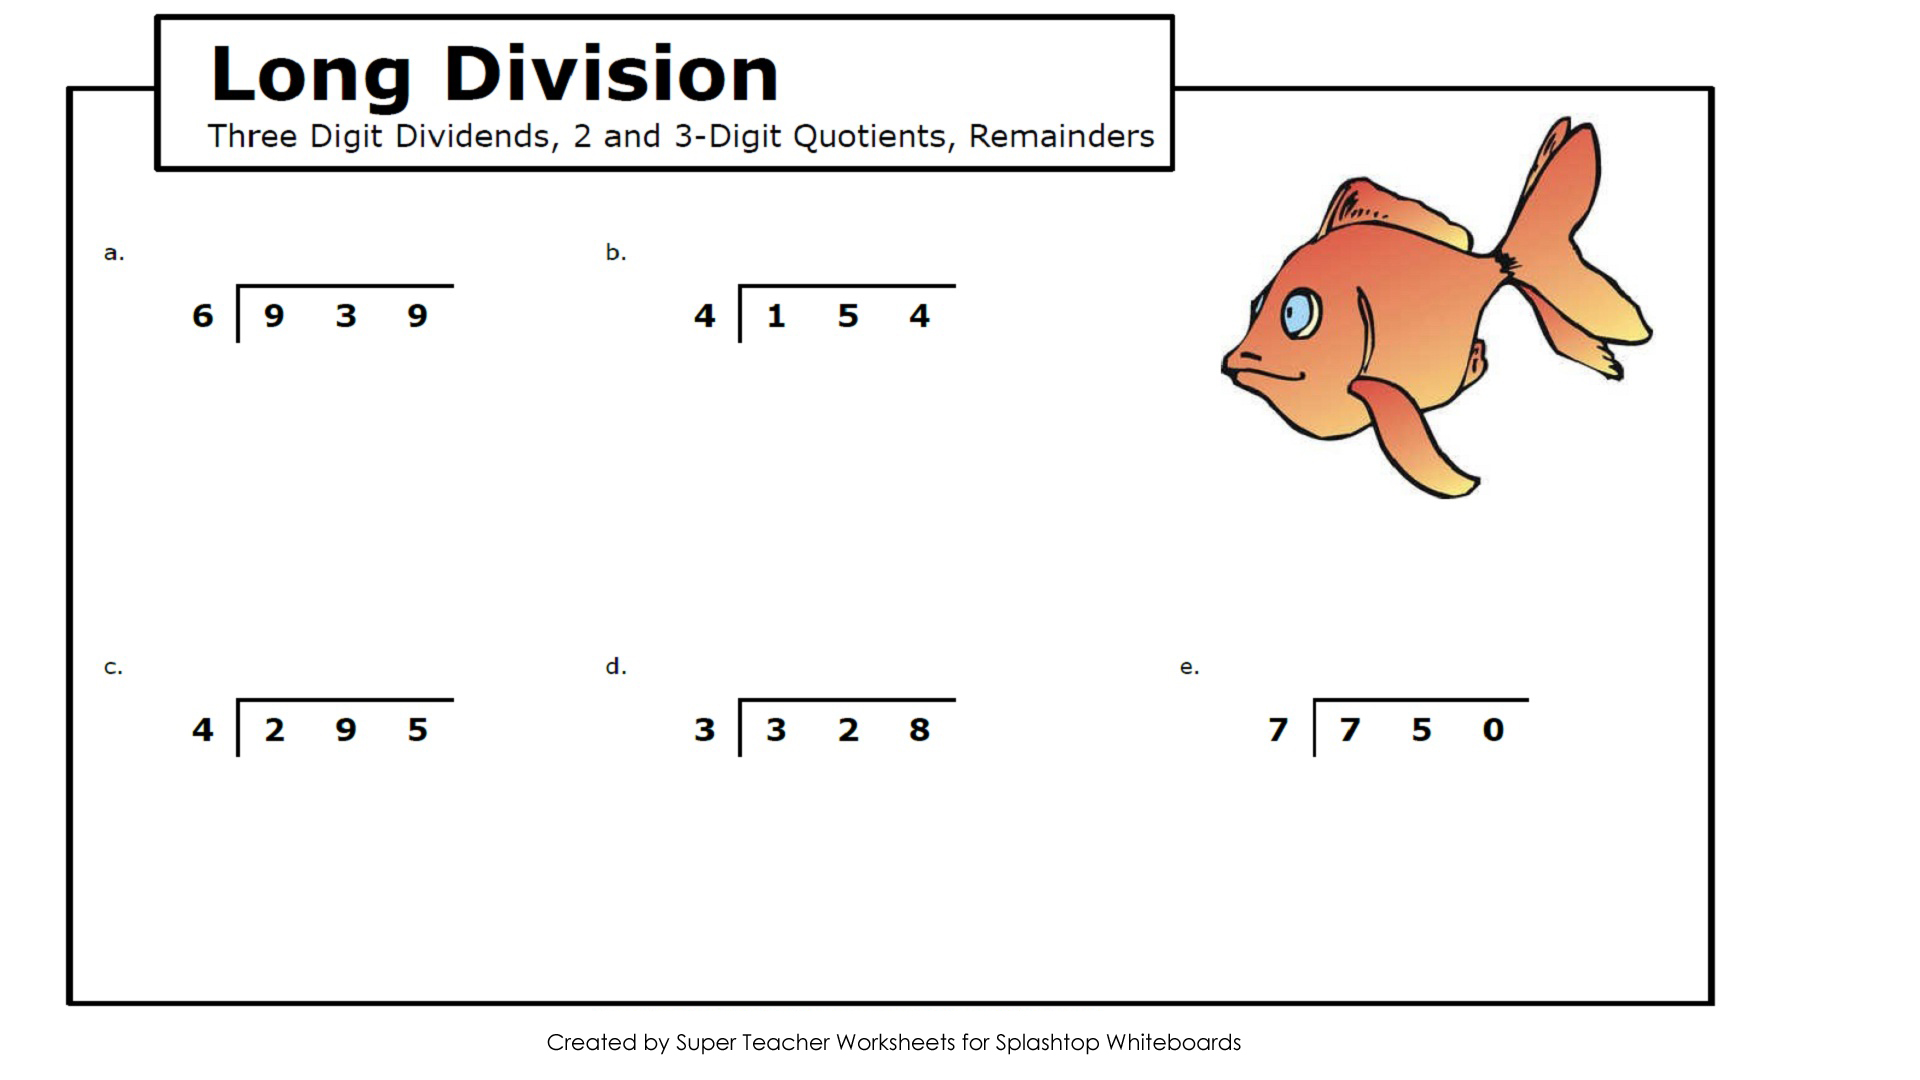 Uncategorized Printable Long Division Worksheets math long division lessons tes teach worksheets printable for teachers done splashtop whiteboard background graphics